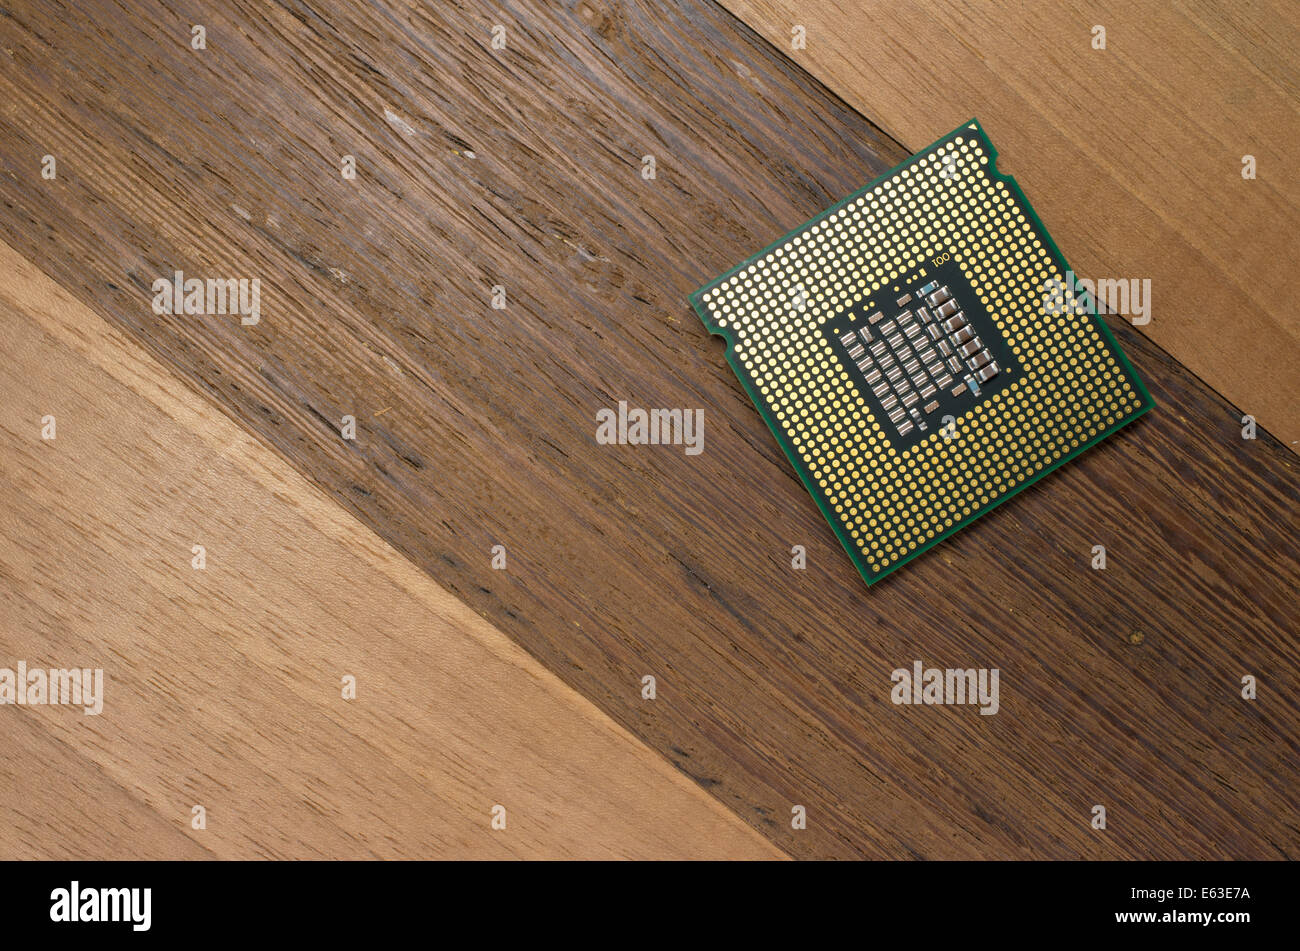 Intel Core 2 Quad cpu back, close up on a wood background - Stock Image